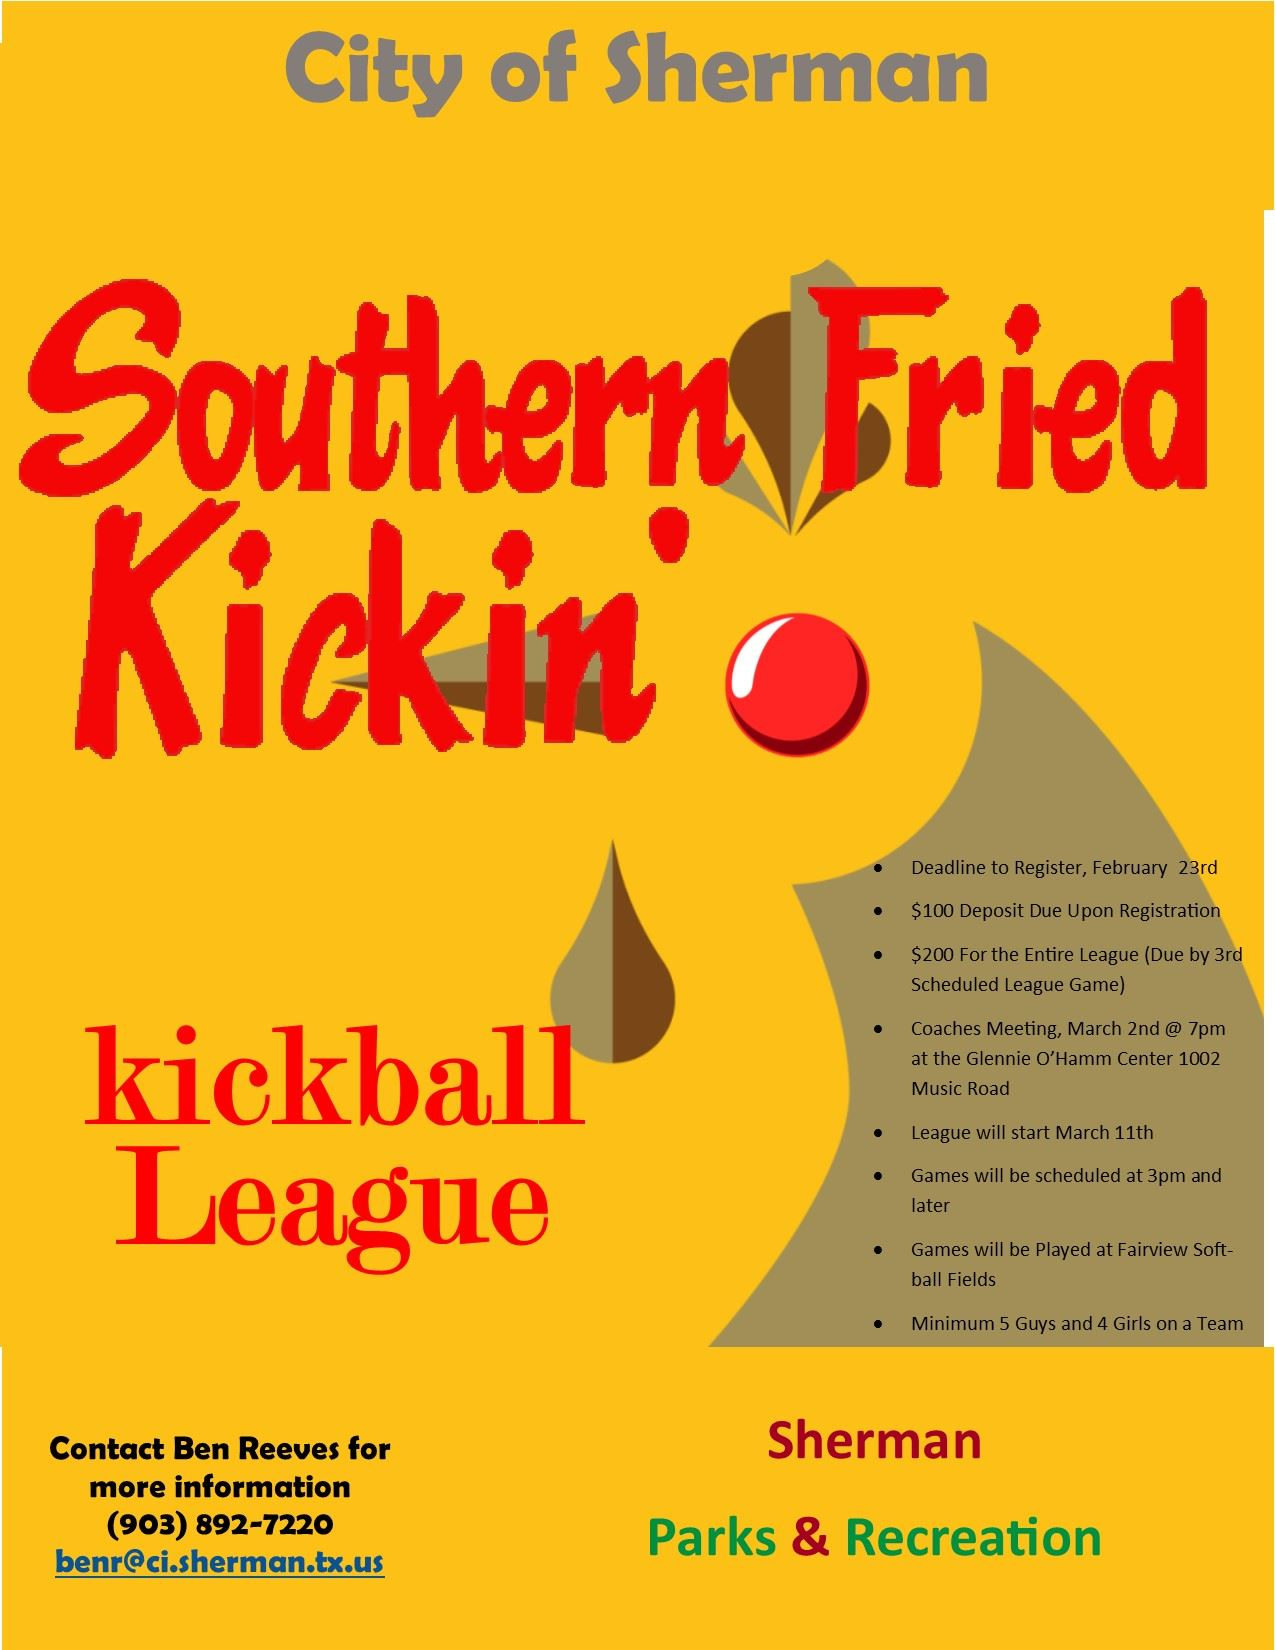 2018 Southern Fried Kickin Kickball League